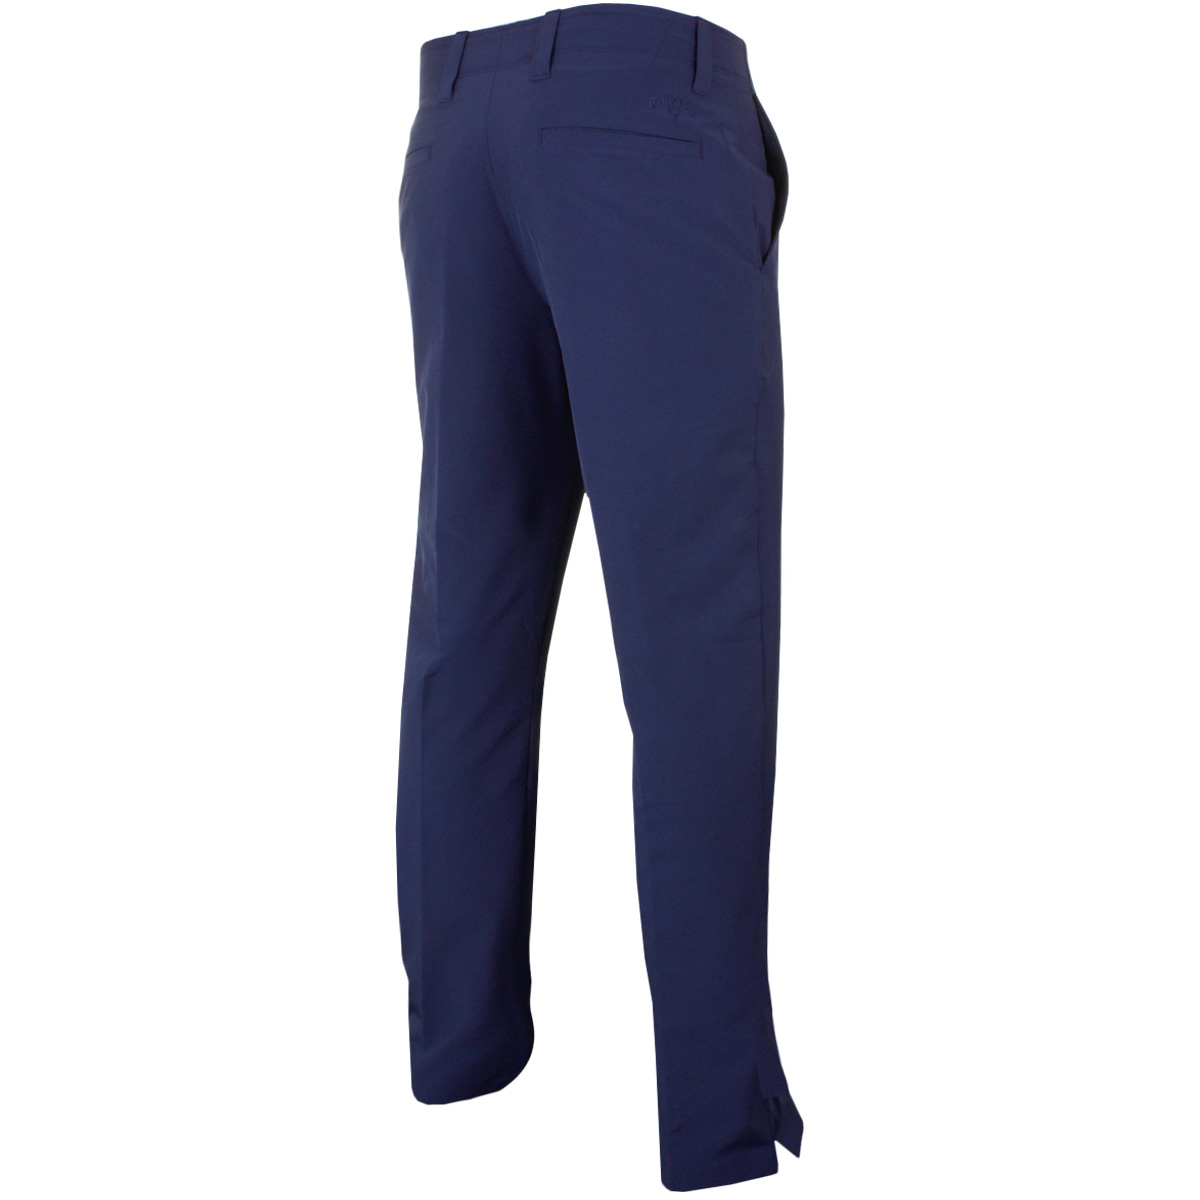 Callaway-Golf-Mens-2020-Chev-Tech-II-Lightweight-Golf-Trousers-27-OFF-RRP thumbnail 13